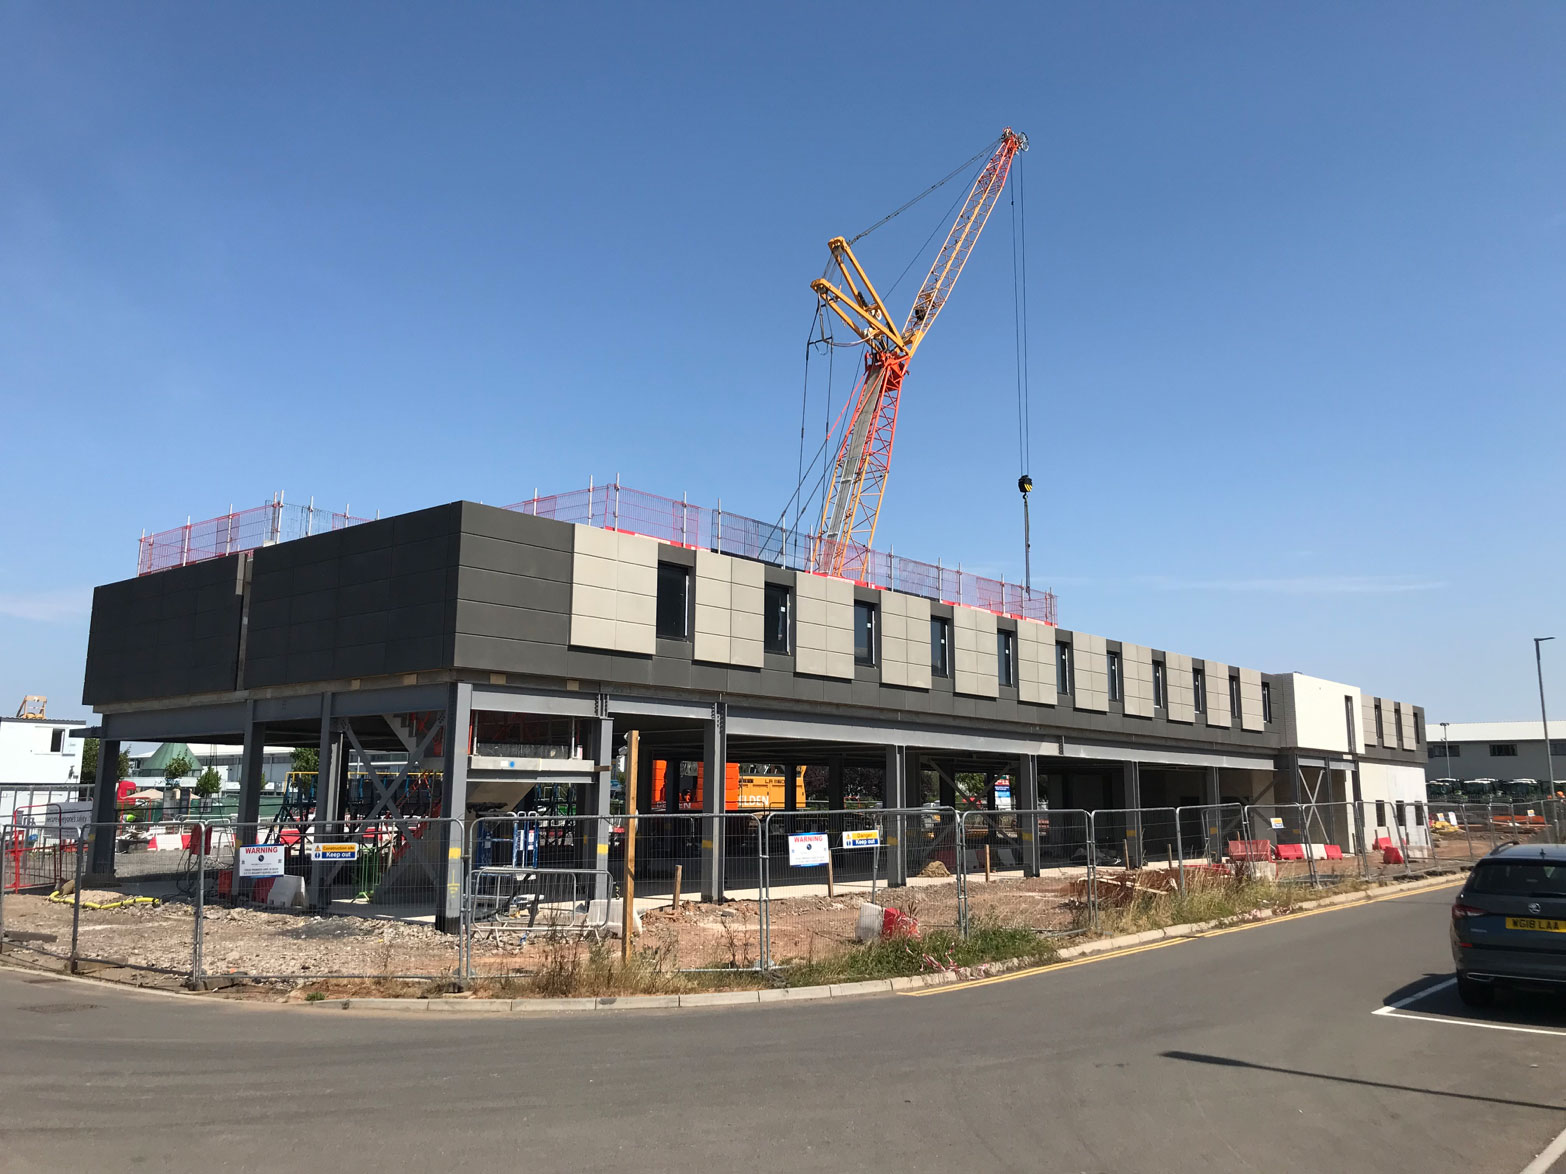 138-bedroom Holiday Inn Express construction project